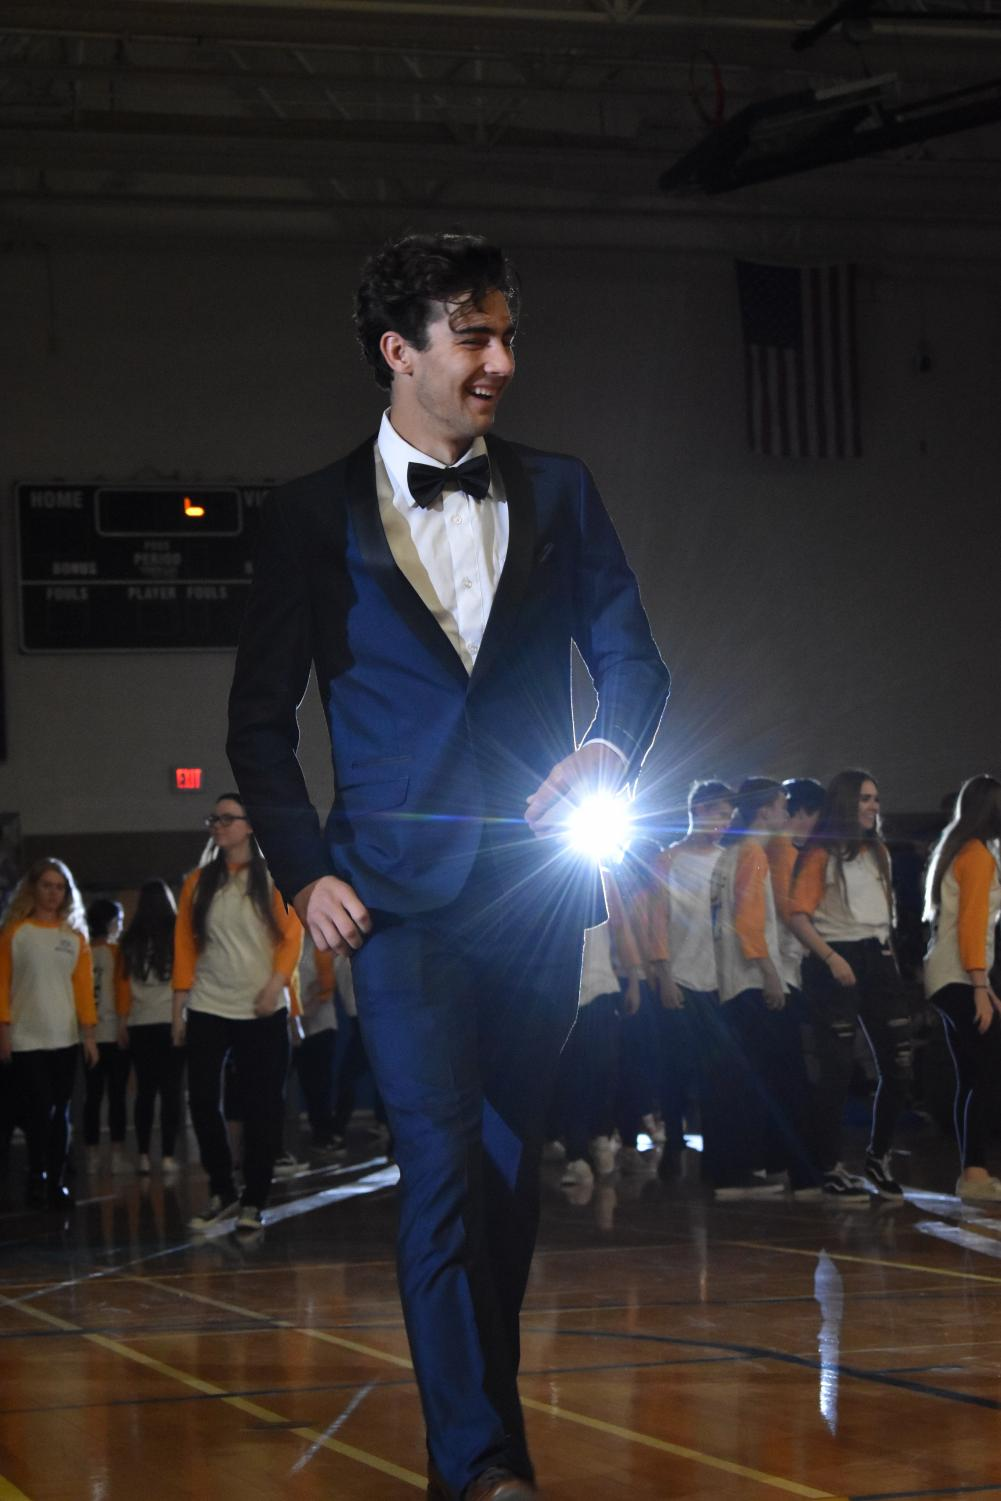 Will Harris, senior, walks across the floor at the Olympic OC Assembly